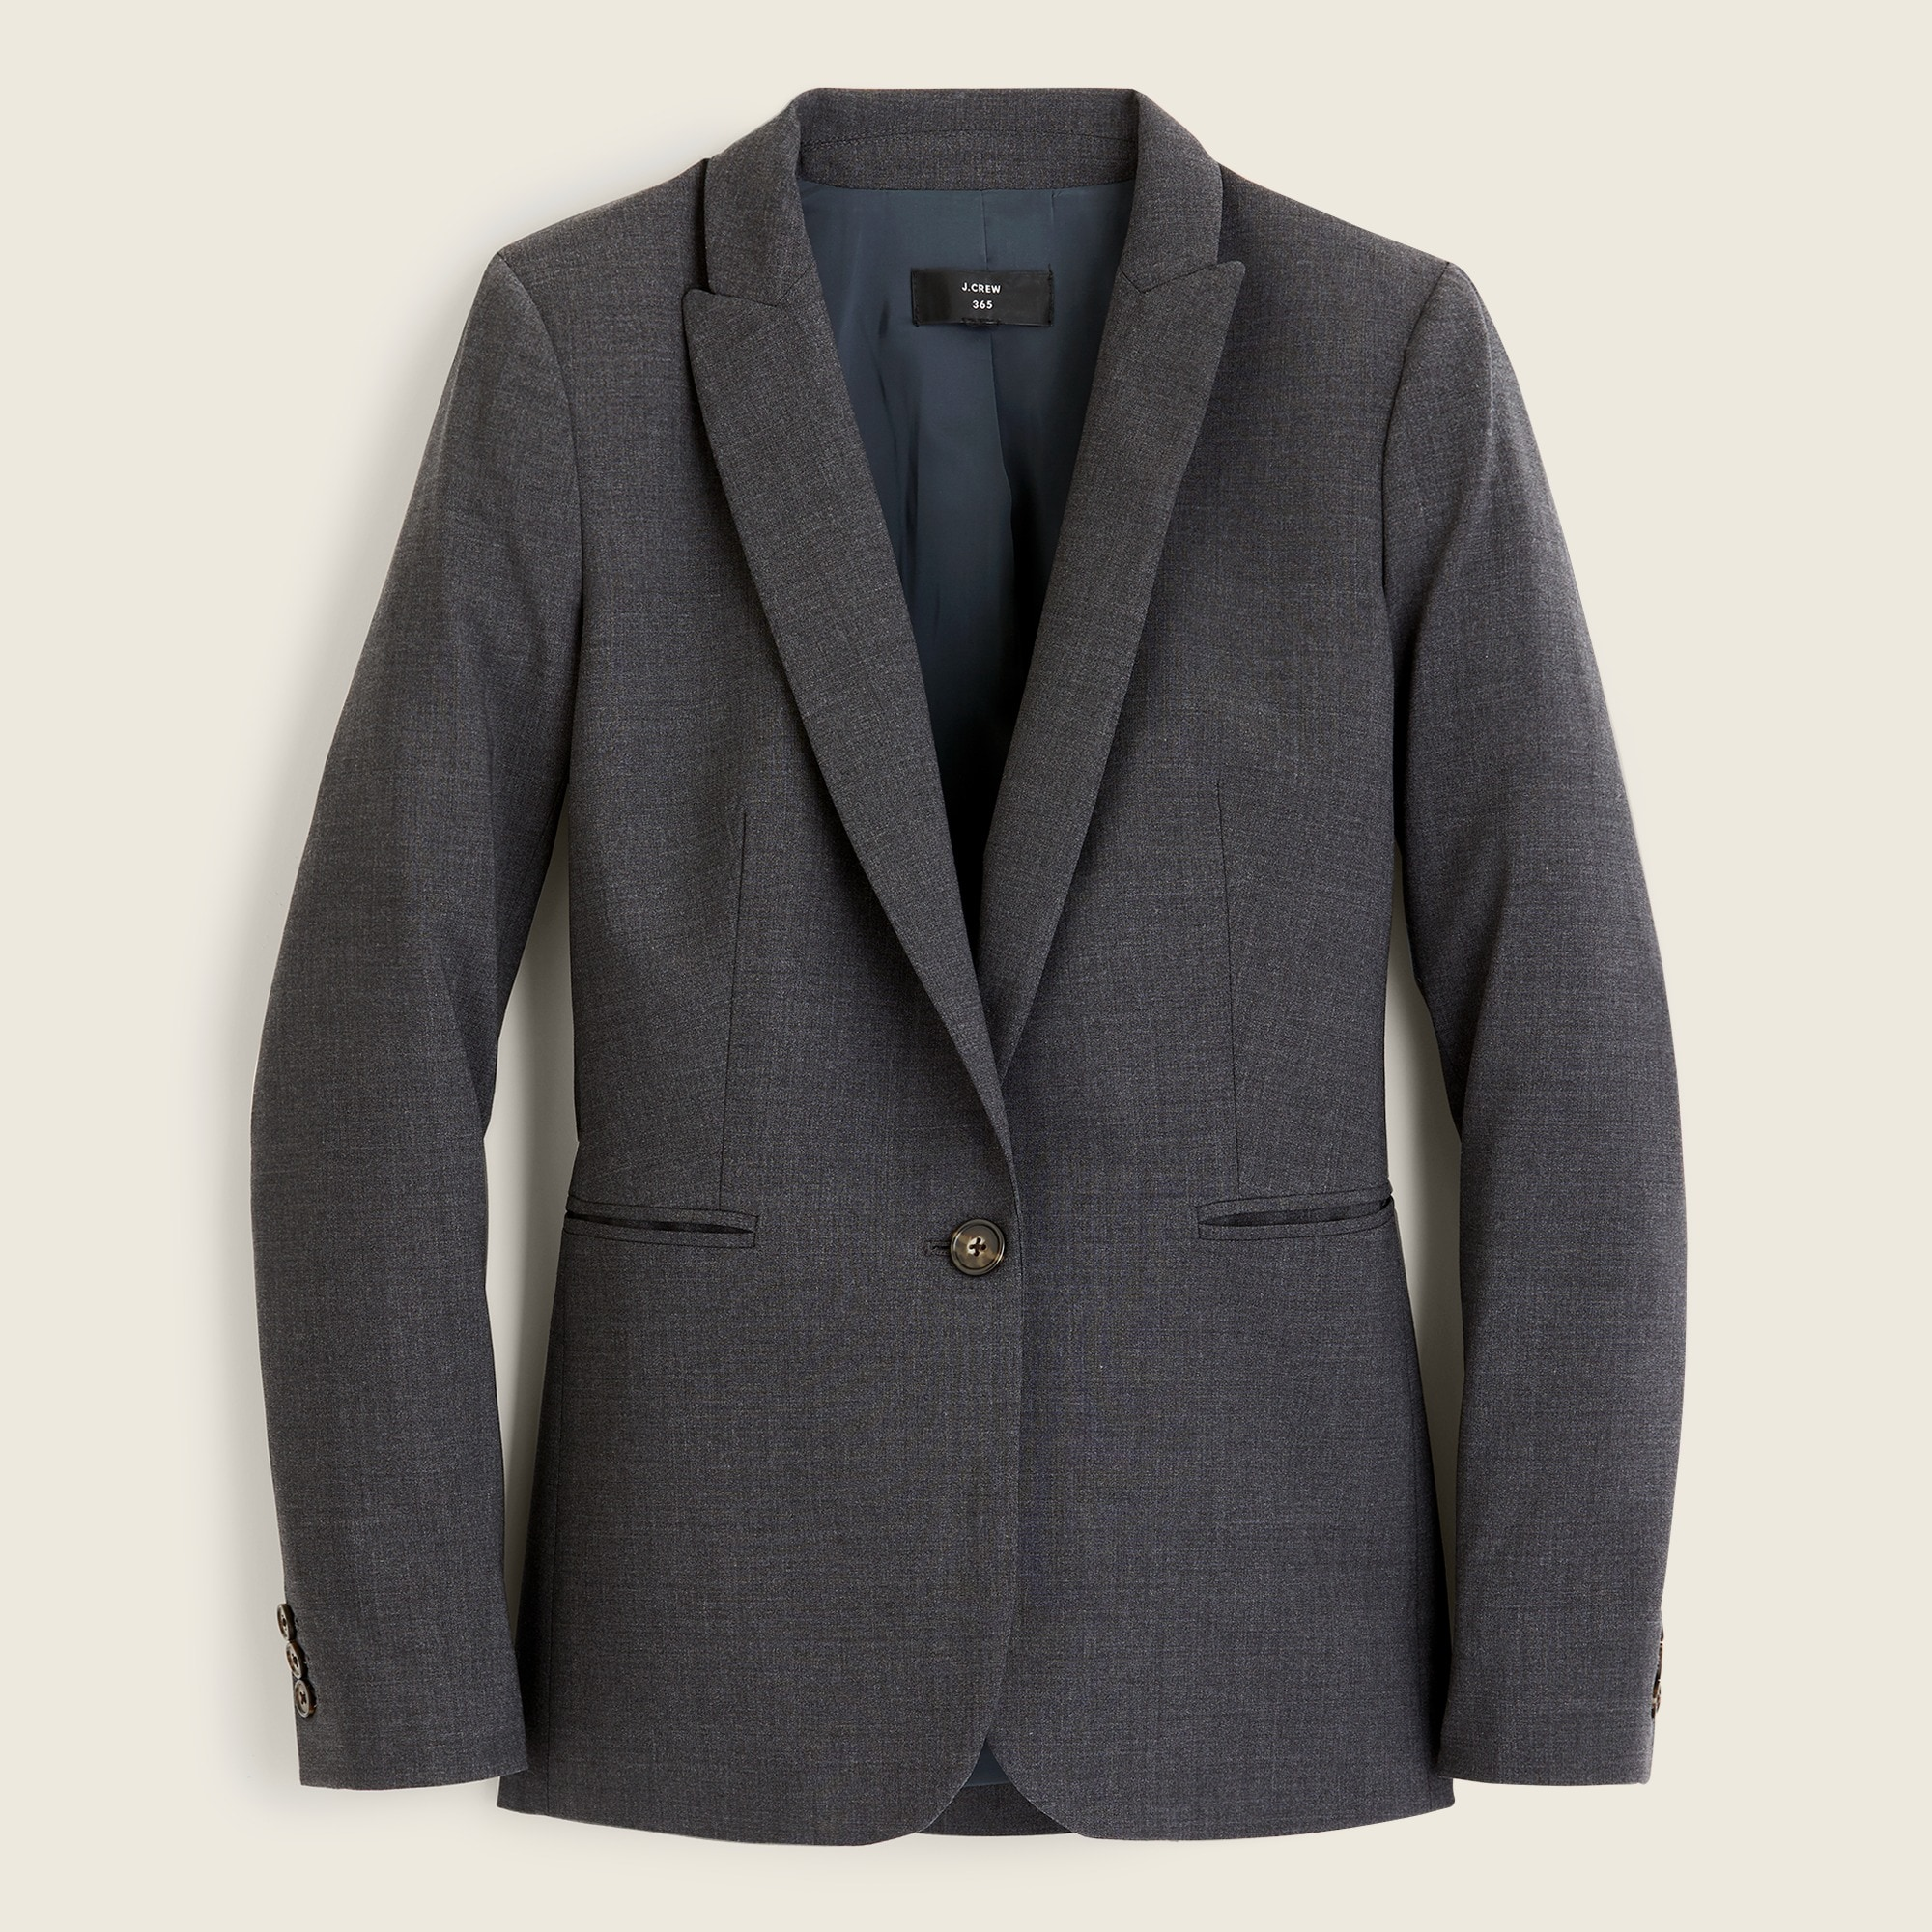 Image 6 for Parke blazer in Italian stretch wool